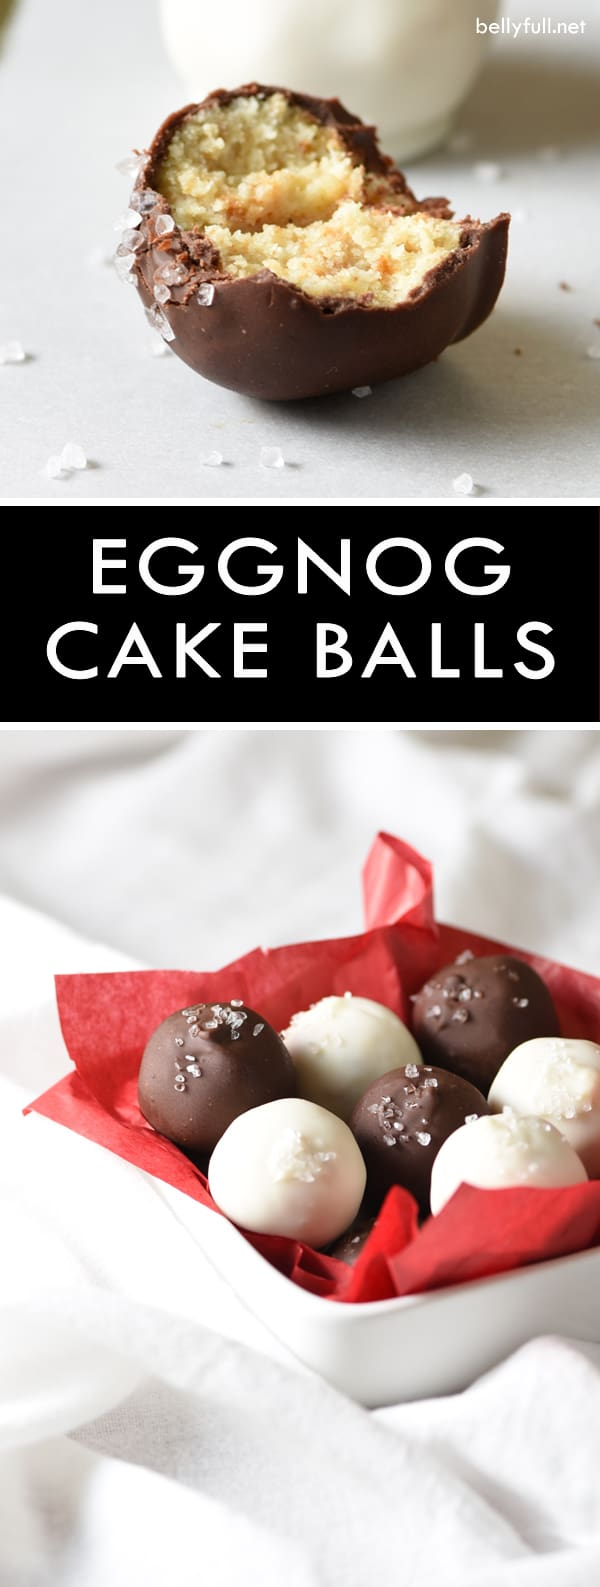 These scrumptious Eggnog Cake Balls are a perfect little treat that can be made up to a week ahead of time. They are sure to be a hit at your next holiday party! #NextDoorChef